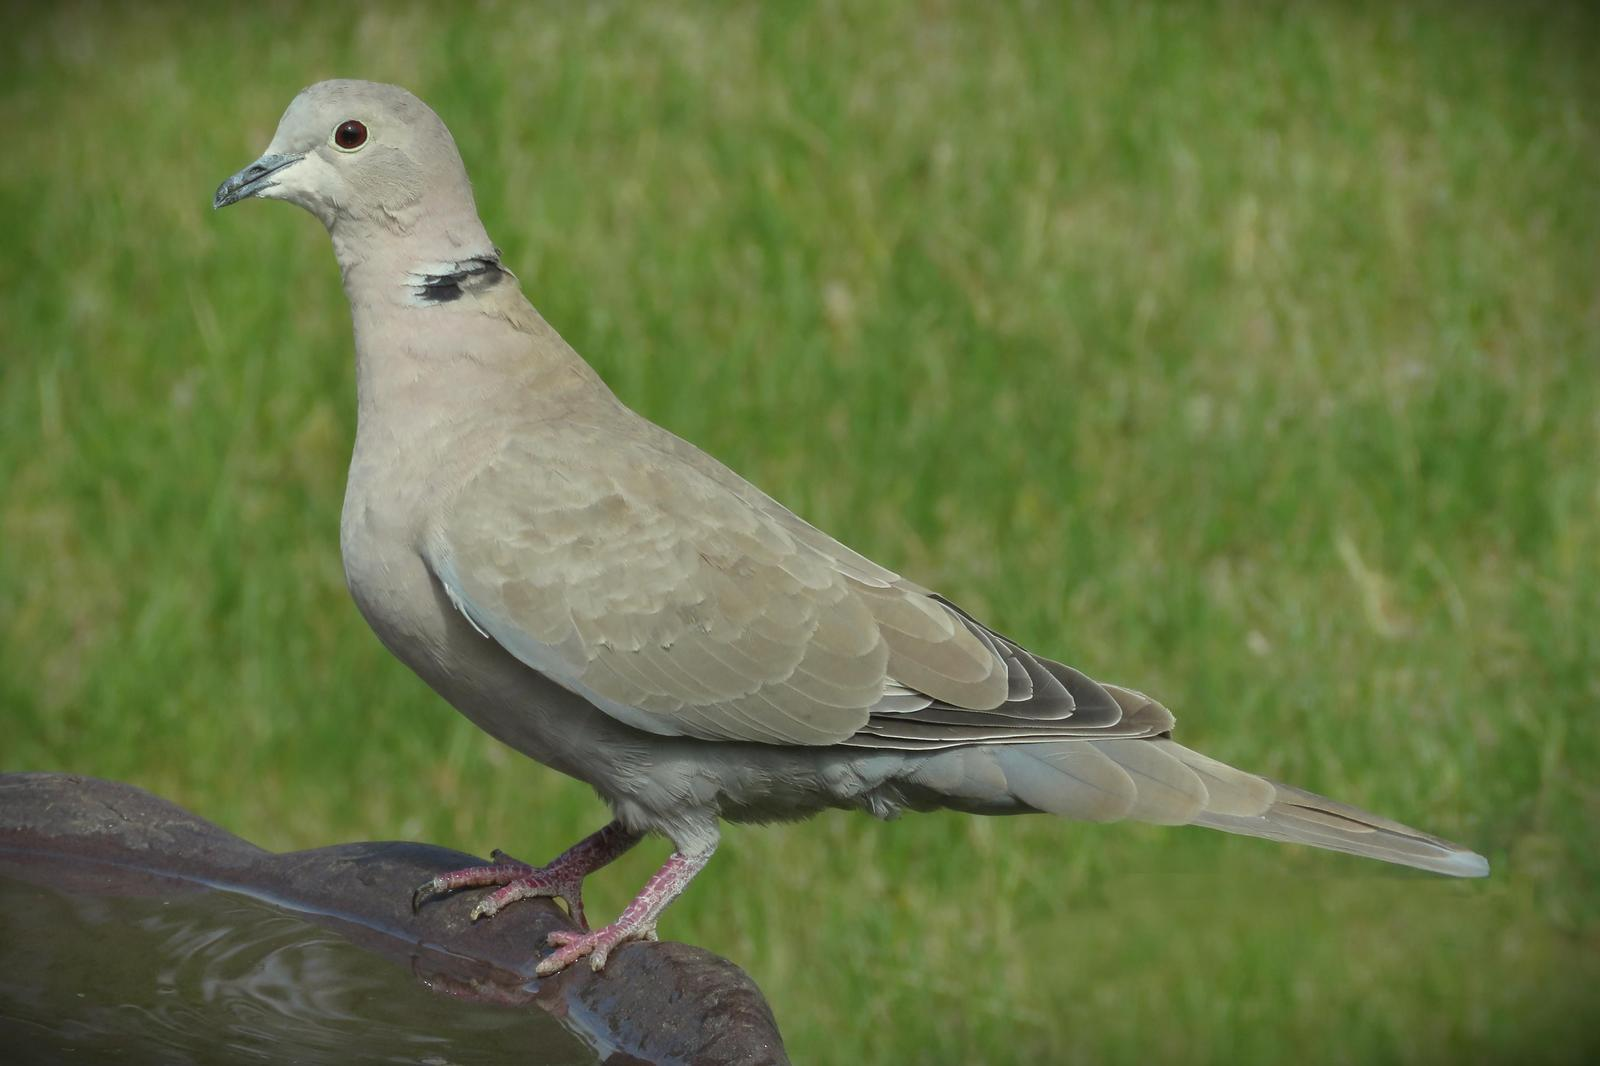 Eurasian Collared-Dove Photo by Bob Neugebauer